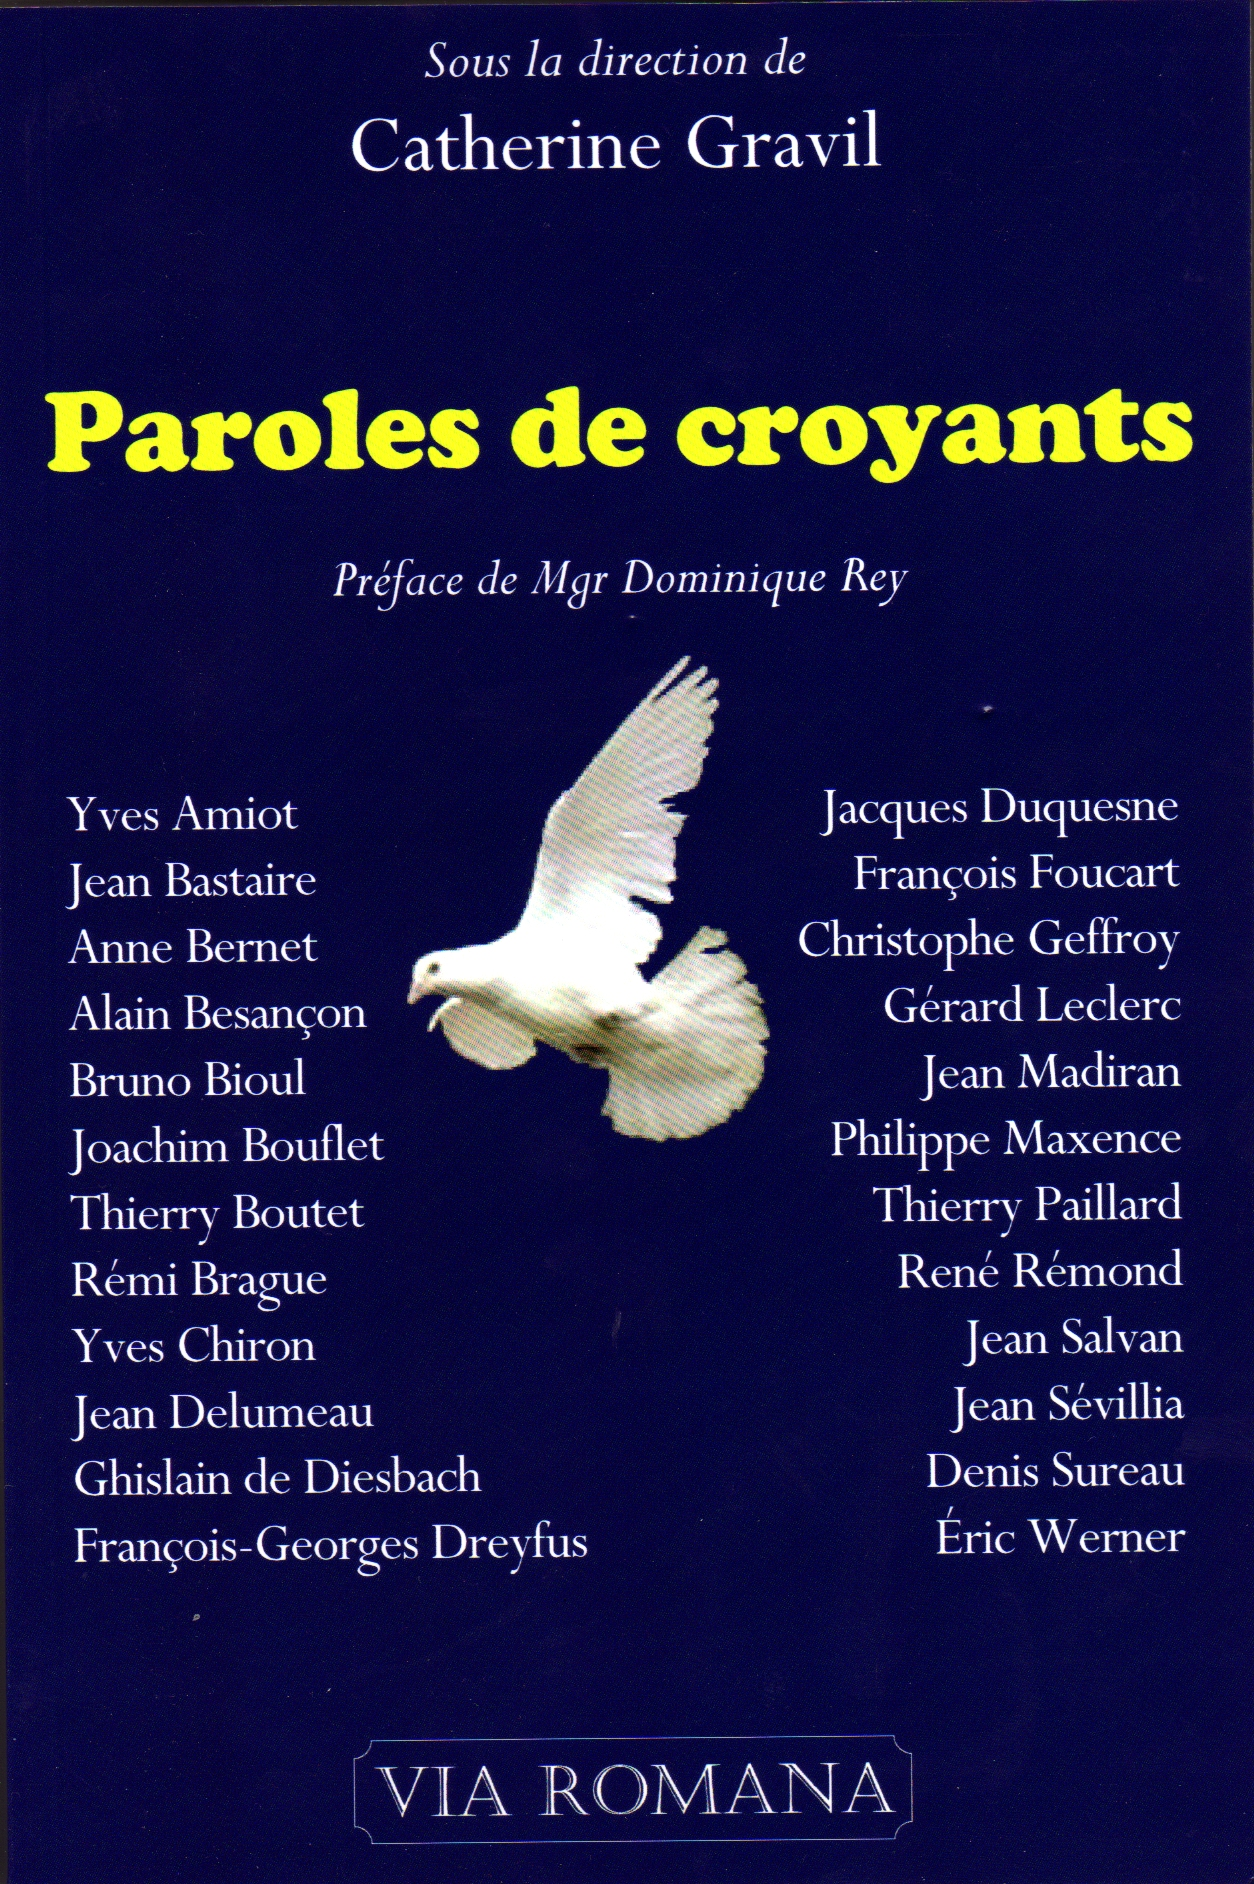 Paroles de croyants